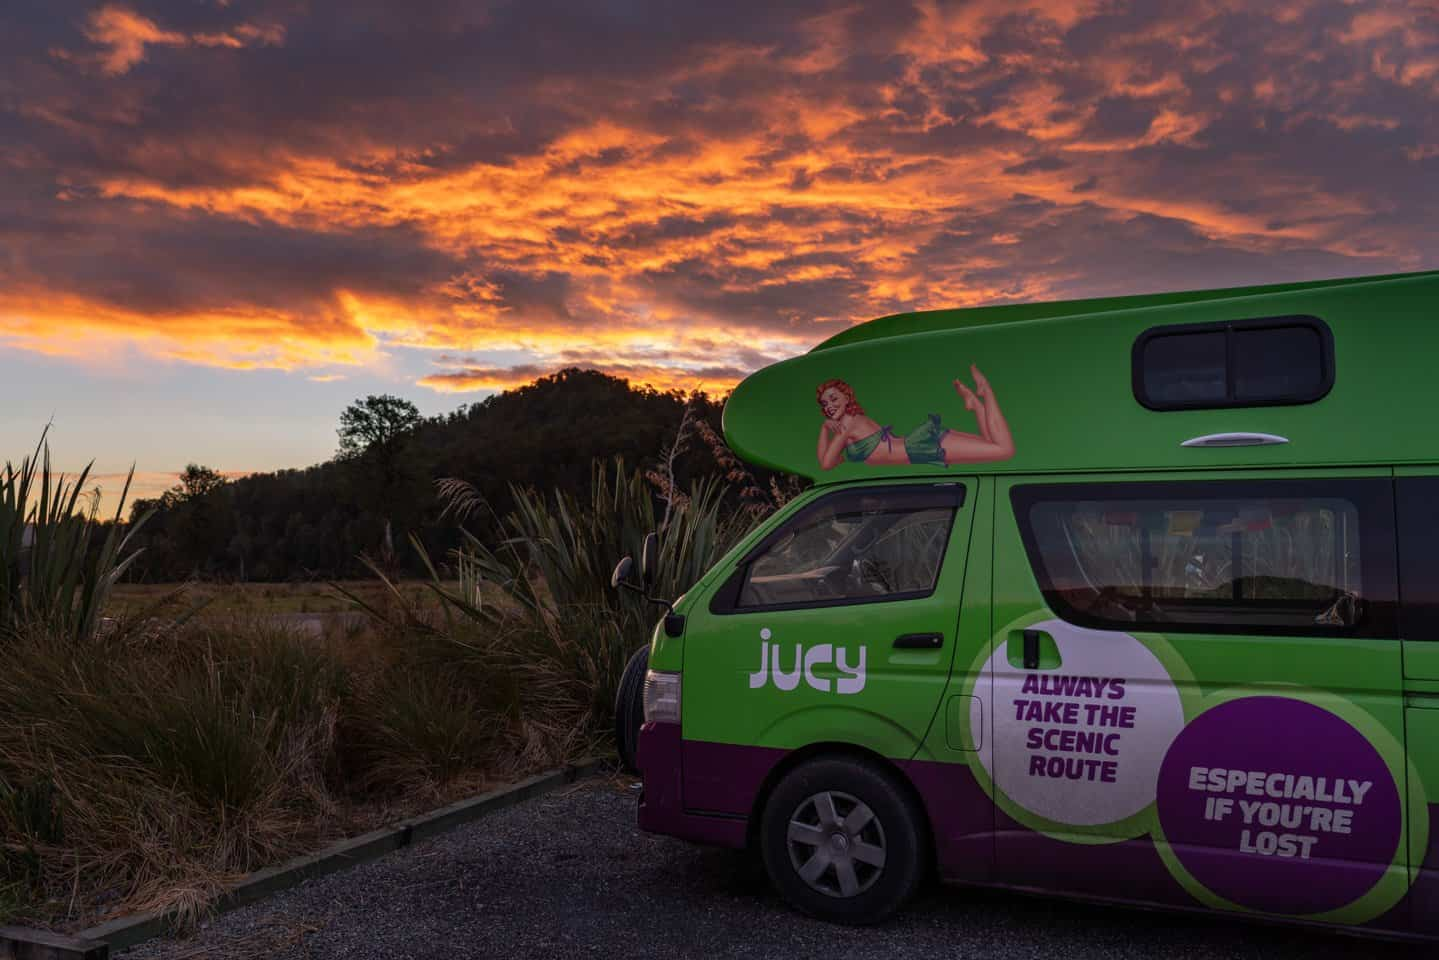 We found these maps and resources extremely helpful for guidance throughout our time campervanning in New Zealand.